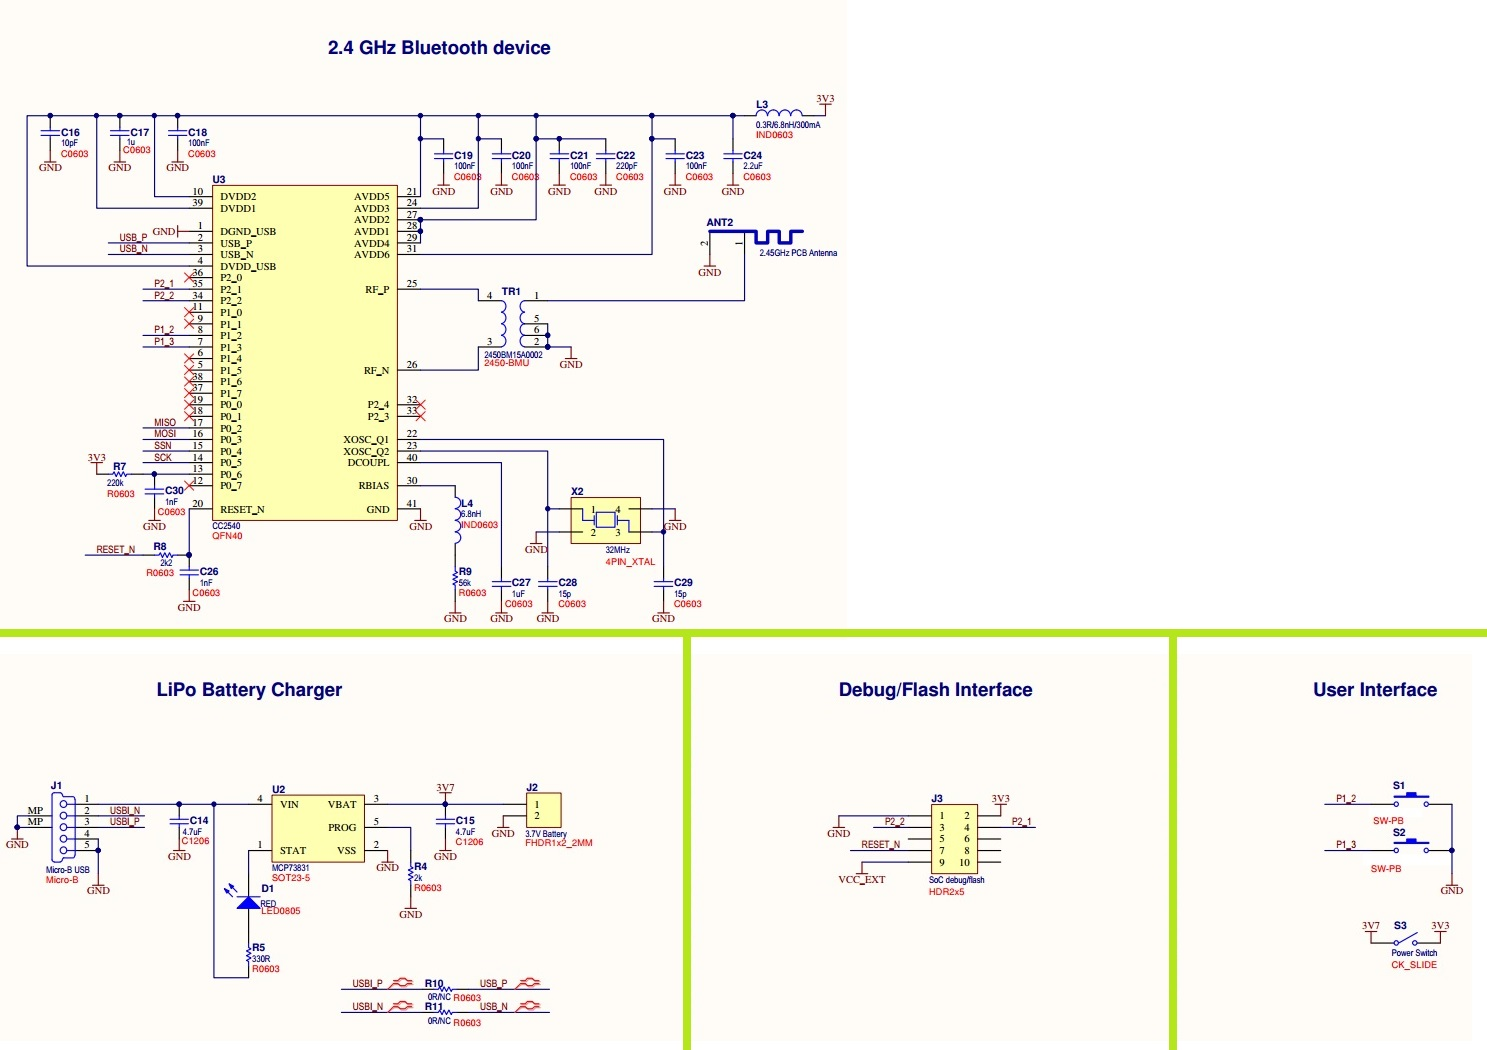 Resolved] Newbie needs help with CC2540 firmware setting ... on computer schematic, water pump schematic, battery schematic, flashlight schematic, door schematic, engine schematic, car schematic, remote start schematic, radio schematic, cell phone schematic,